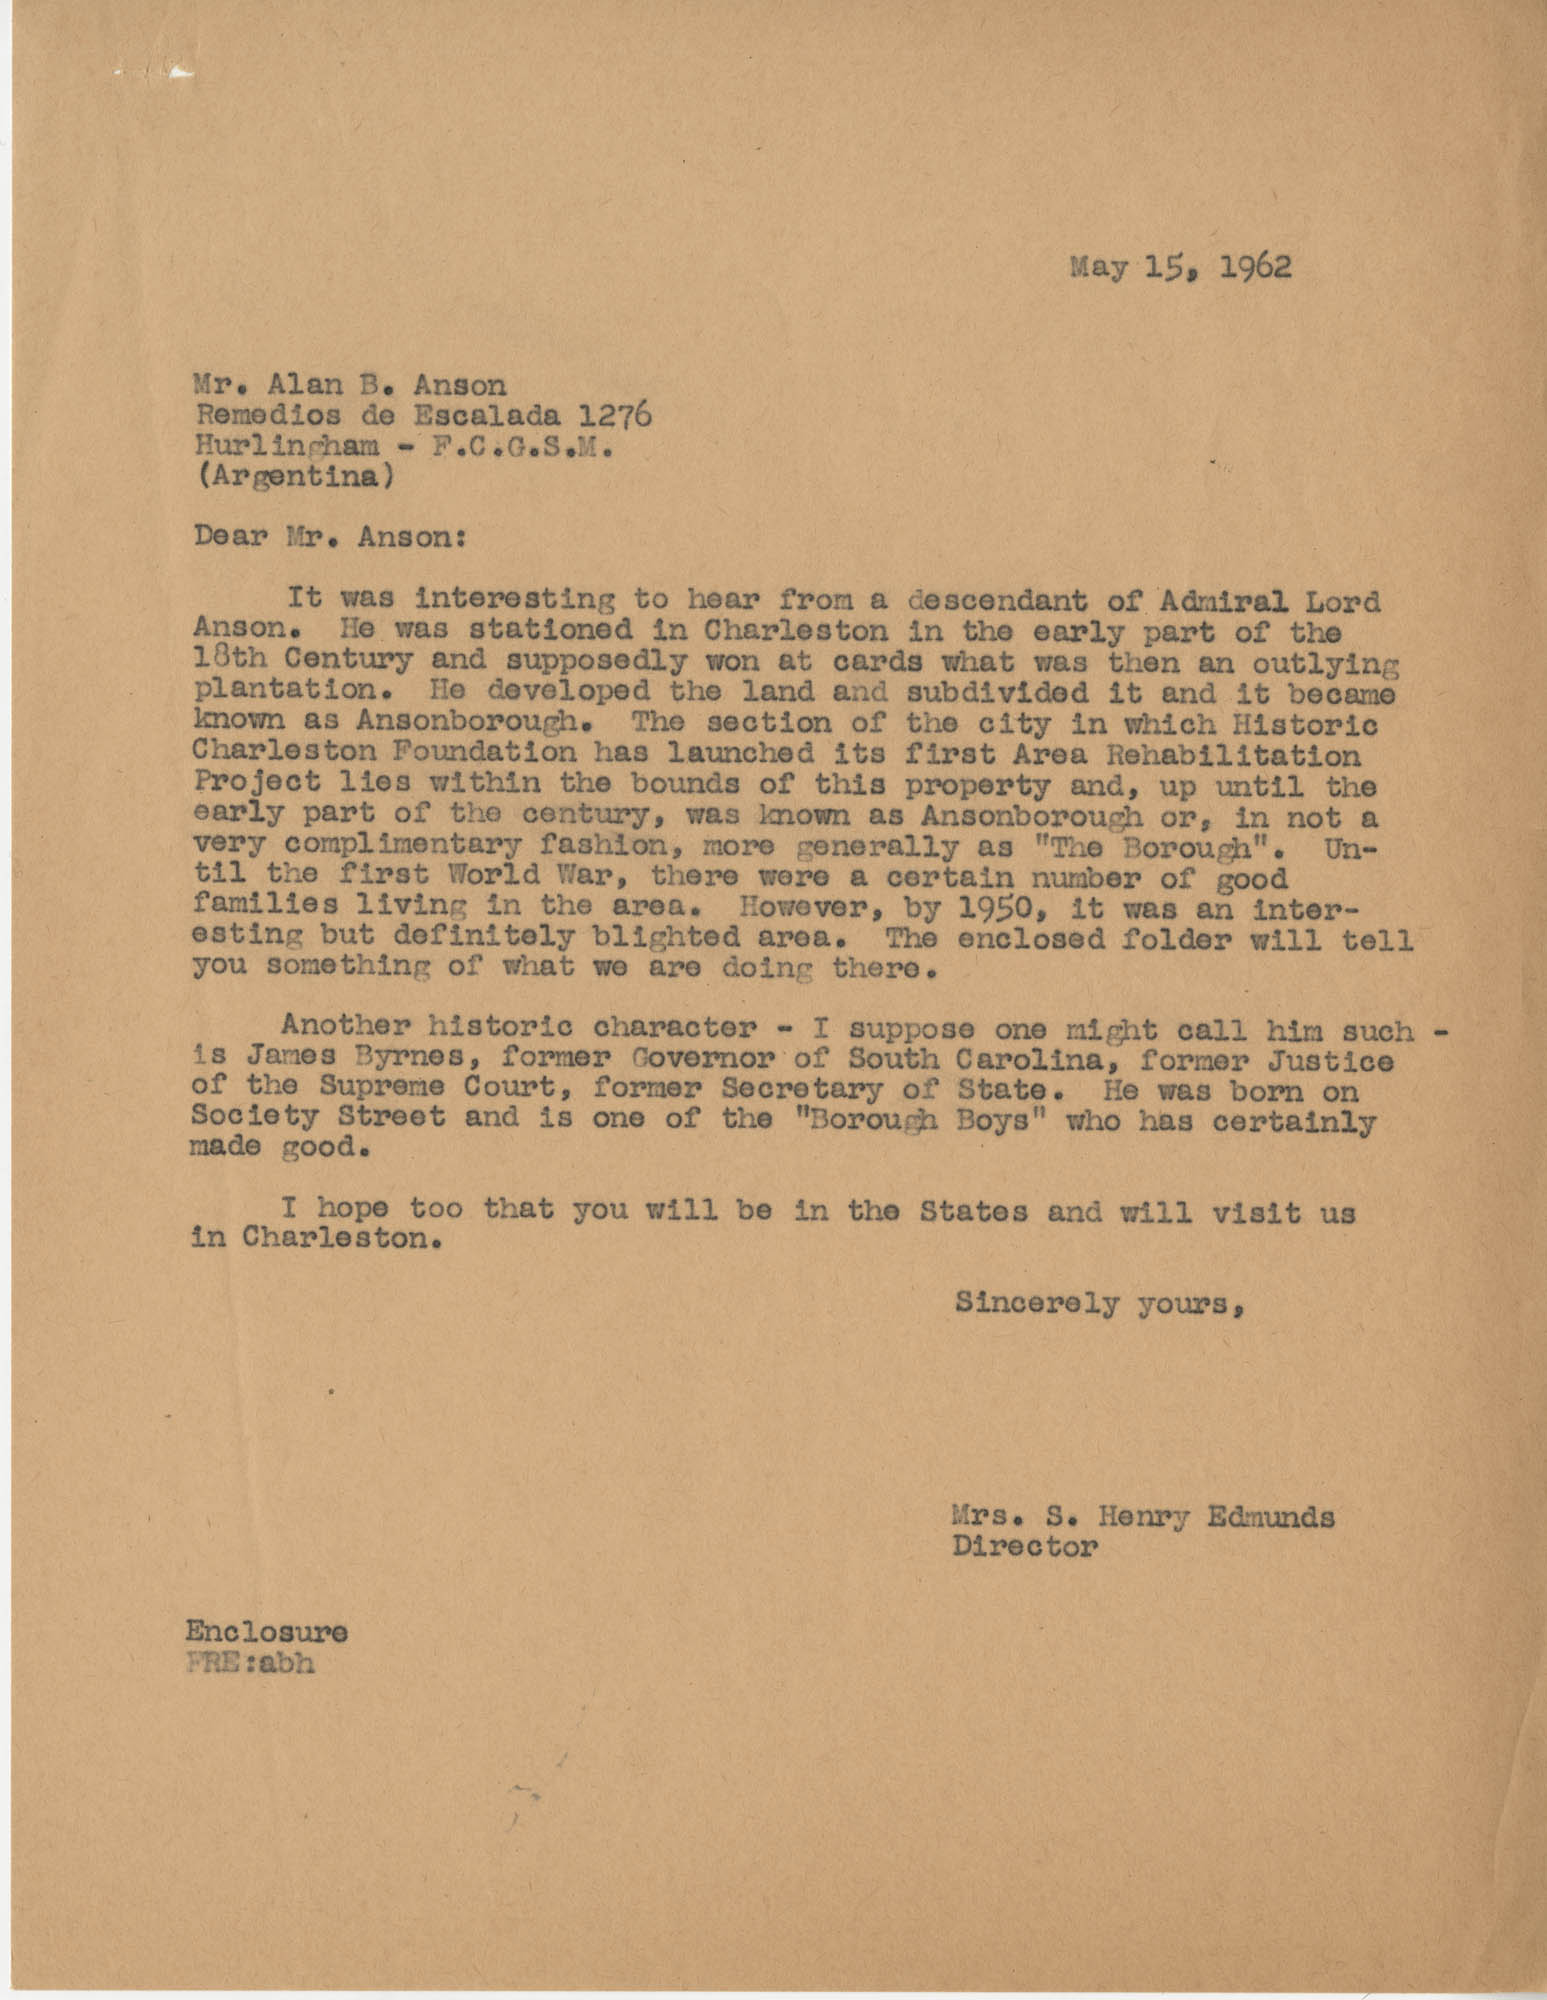 Letter from Mrs. S. Henry Edmunds to Mr. Alan B. Anson